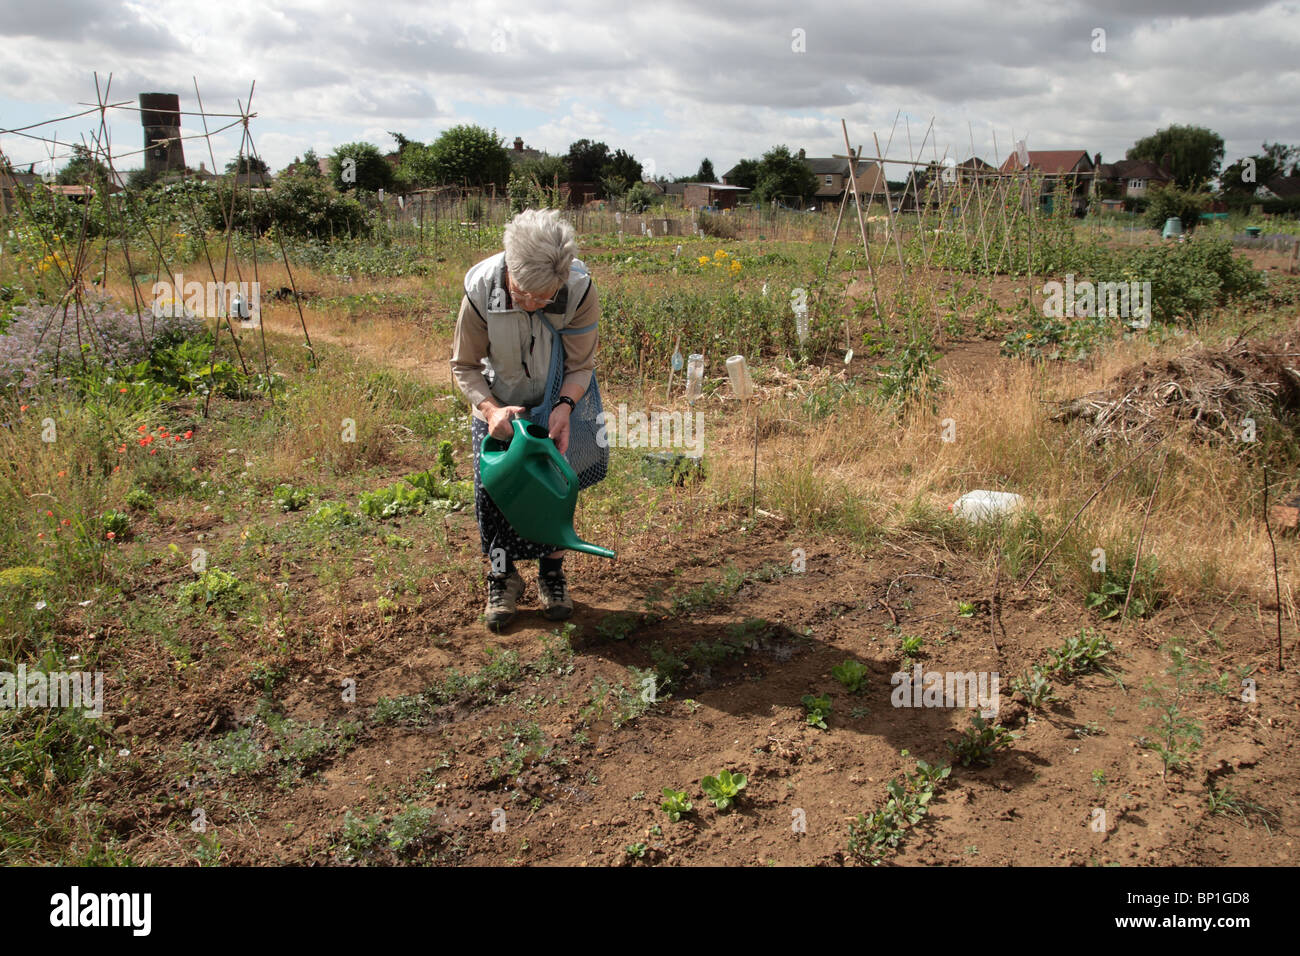 Elderly woman watering plants - Stock Image